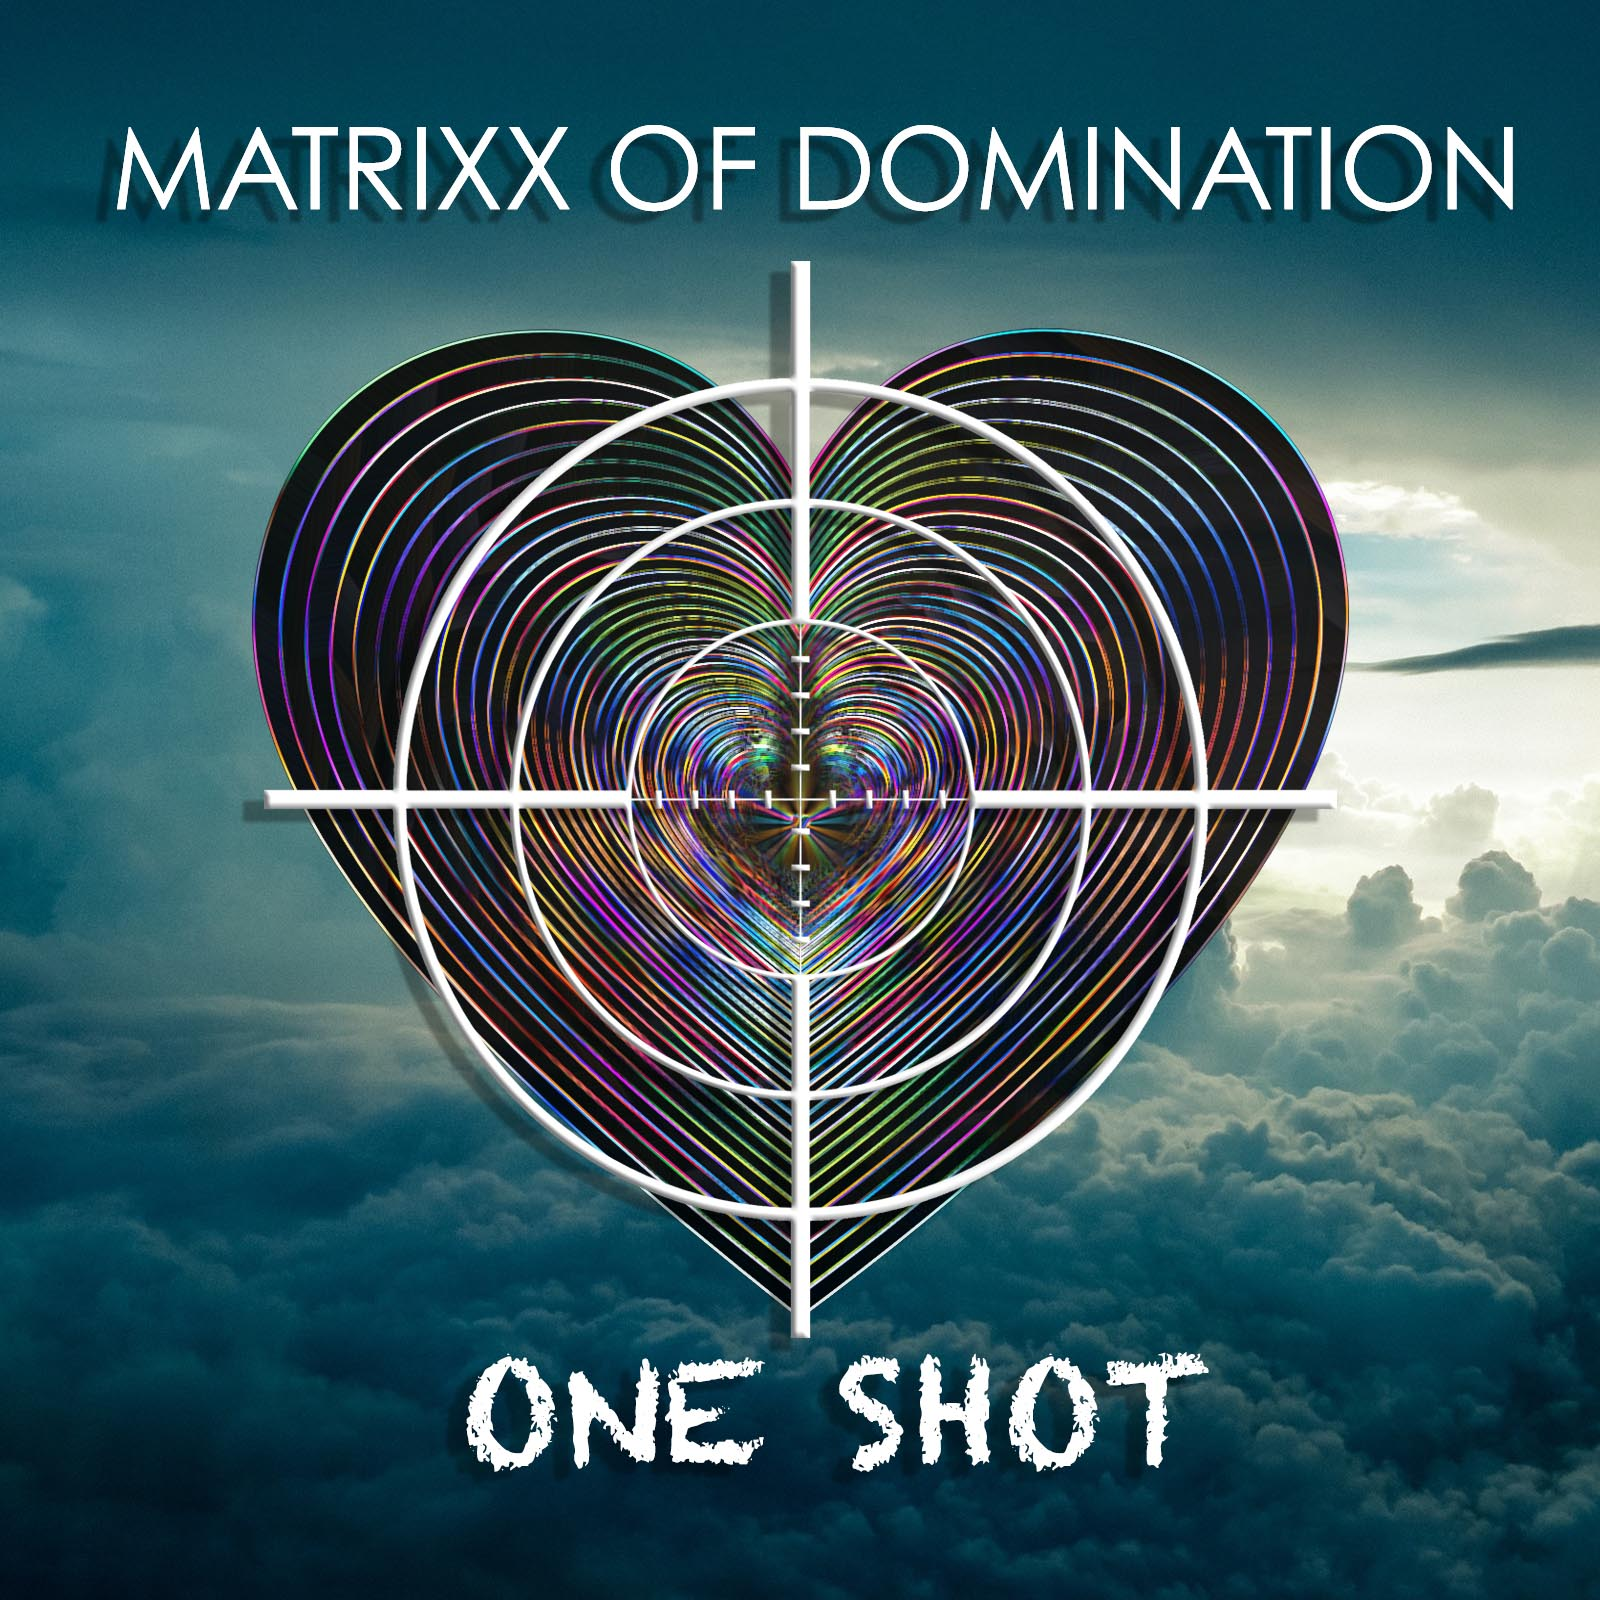 Matrixx of Domination One Shot (Rocked) Single Cover